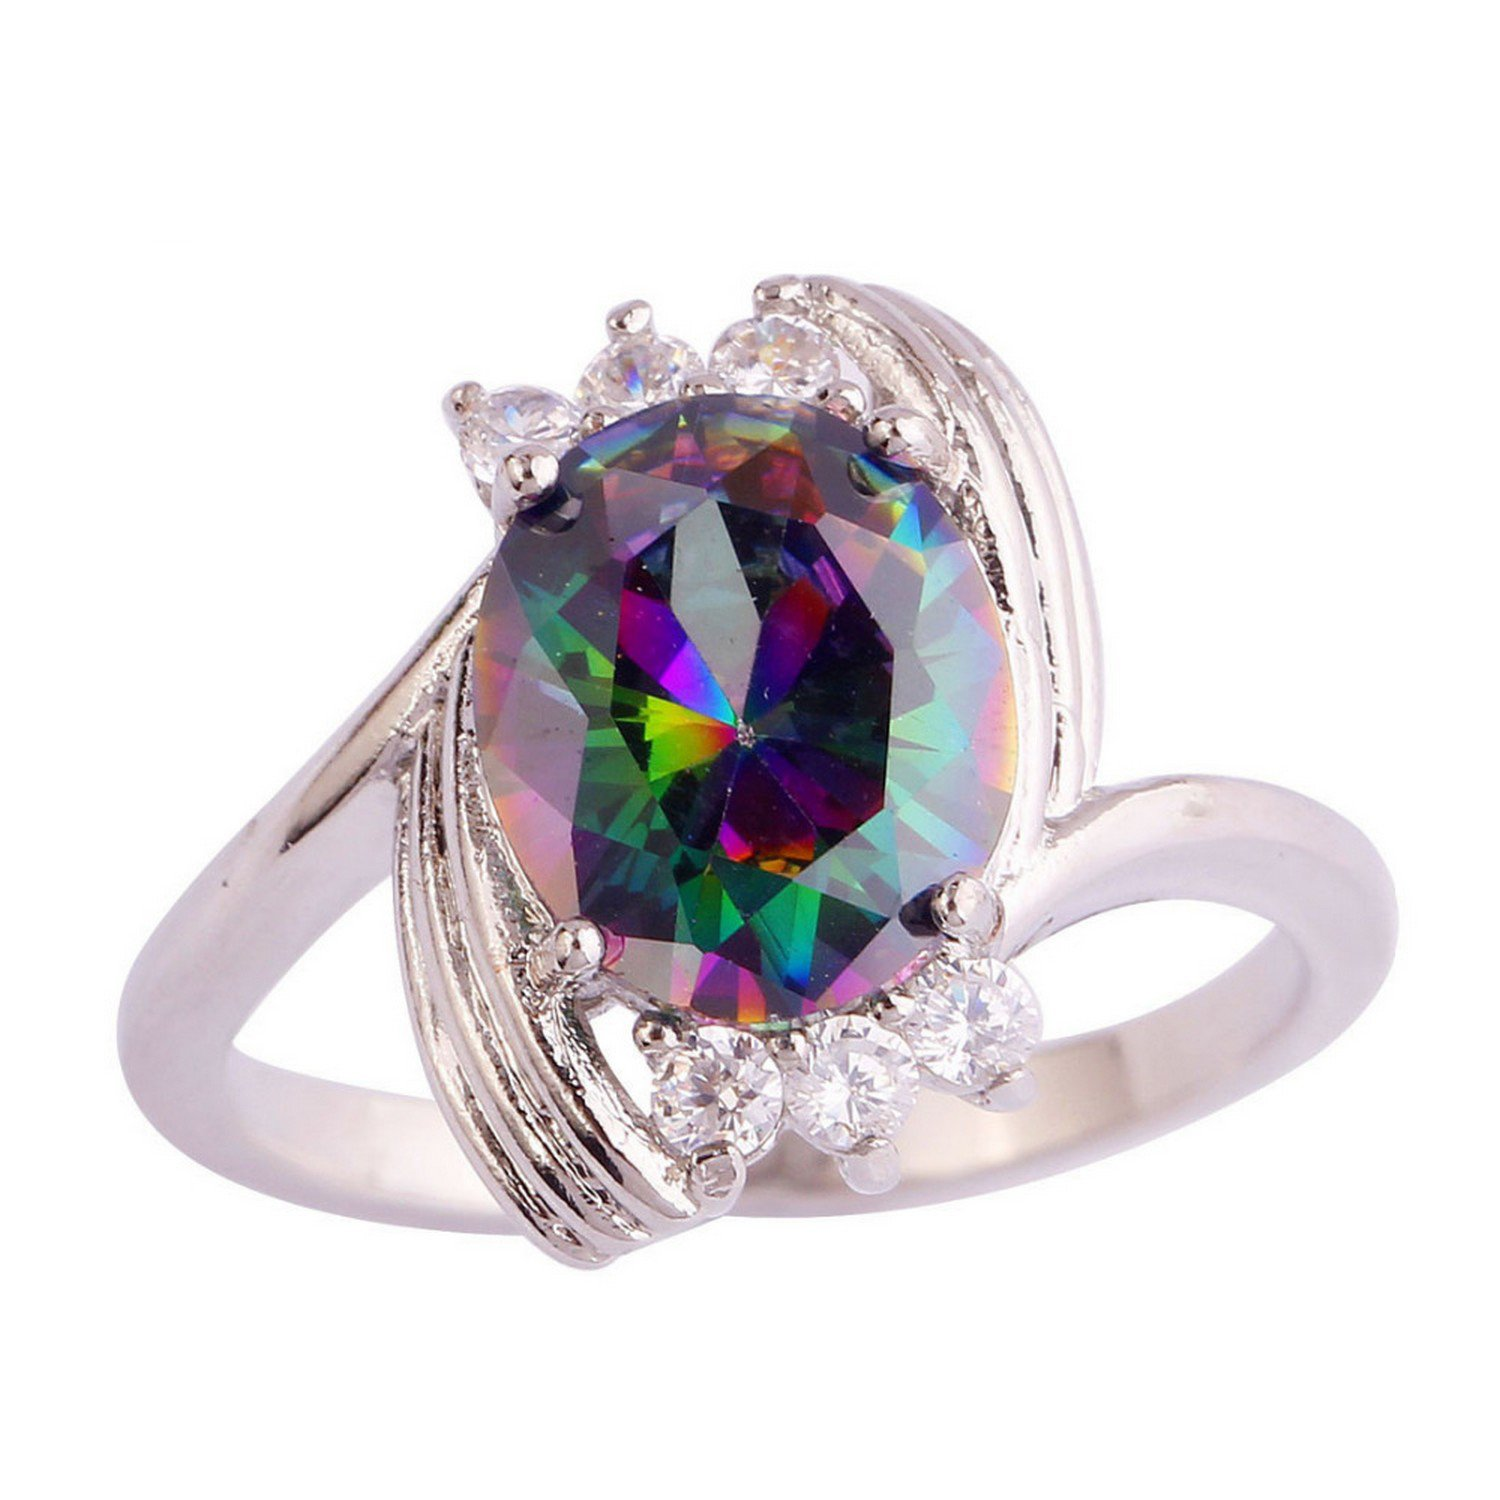 Slyq Jewelry Unisex Mysterious Rainbow White CZ Multi-Color cz engagement ring fashion jewelry rings for women